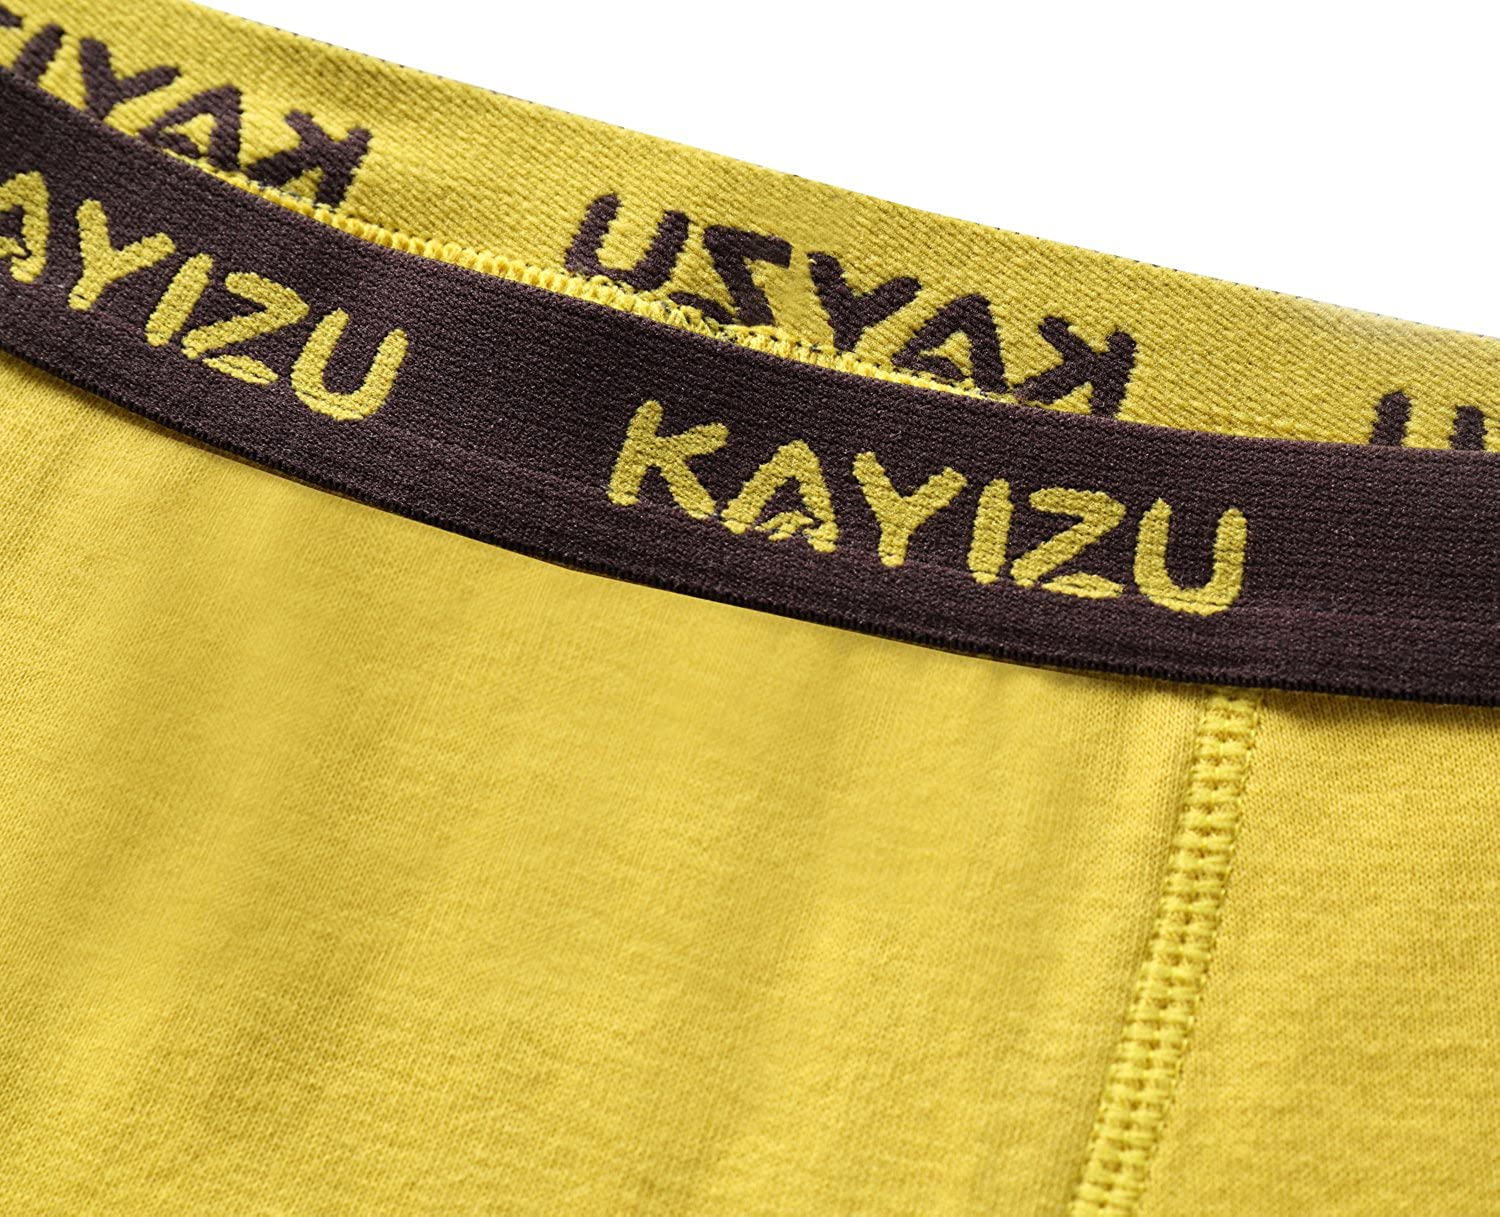 KAYIZU Boys Assorted Soft Cotton Boxer Briefs Pack of 5